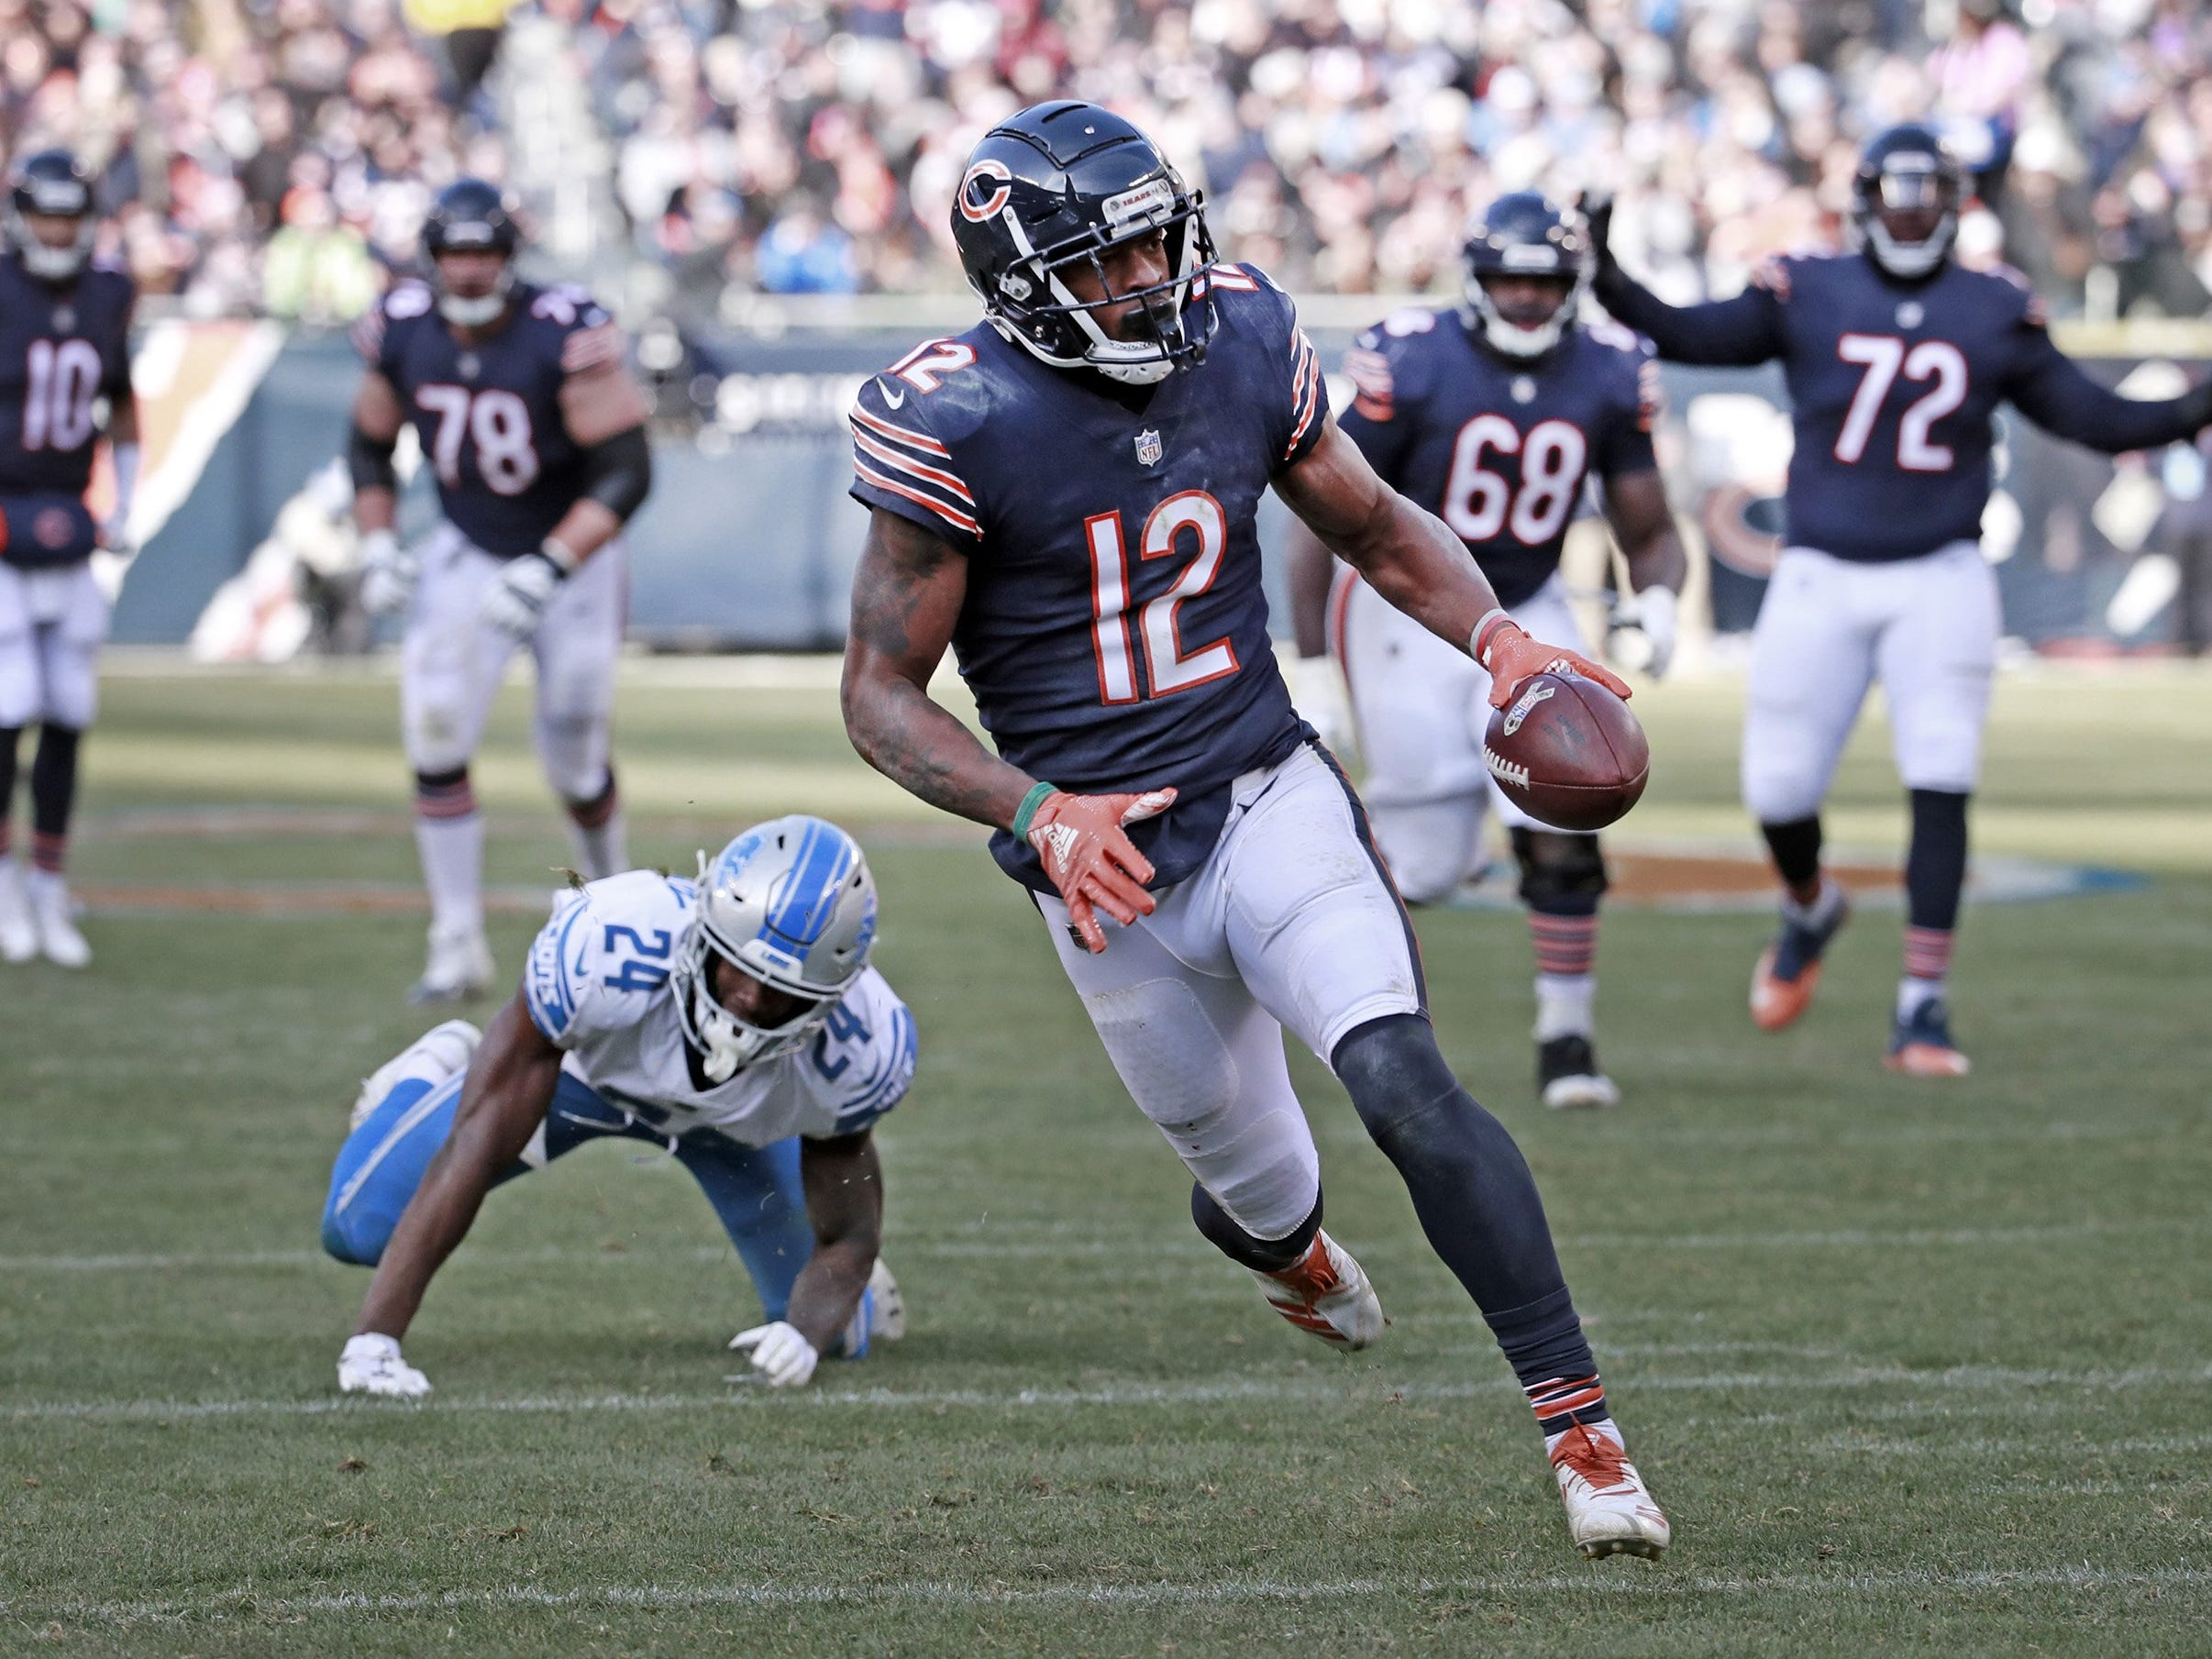 Bears wide receiver Allen Robinson on his way to a touchdown during the second half of the Lions' 34-22 loss on Sunday, Nov. 11, 2018, in Chicago.